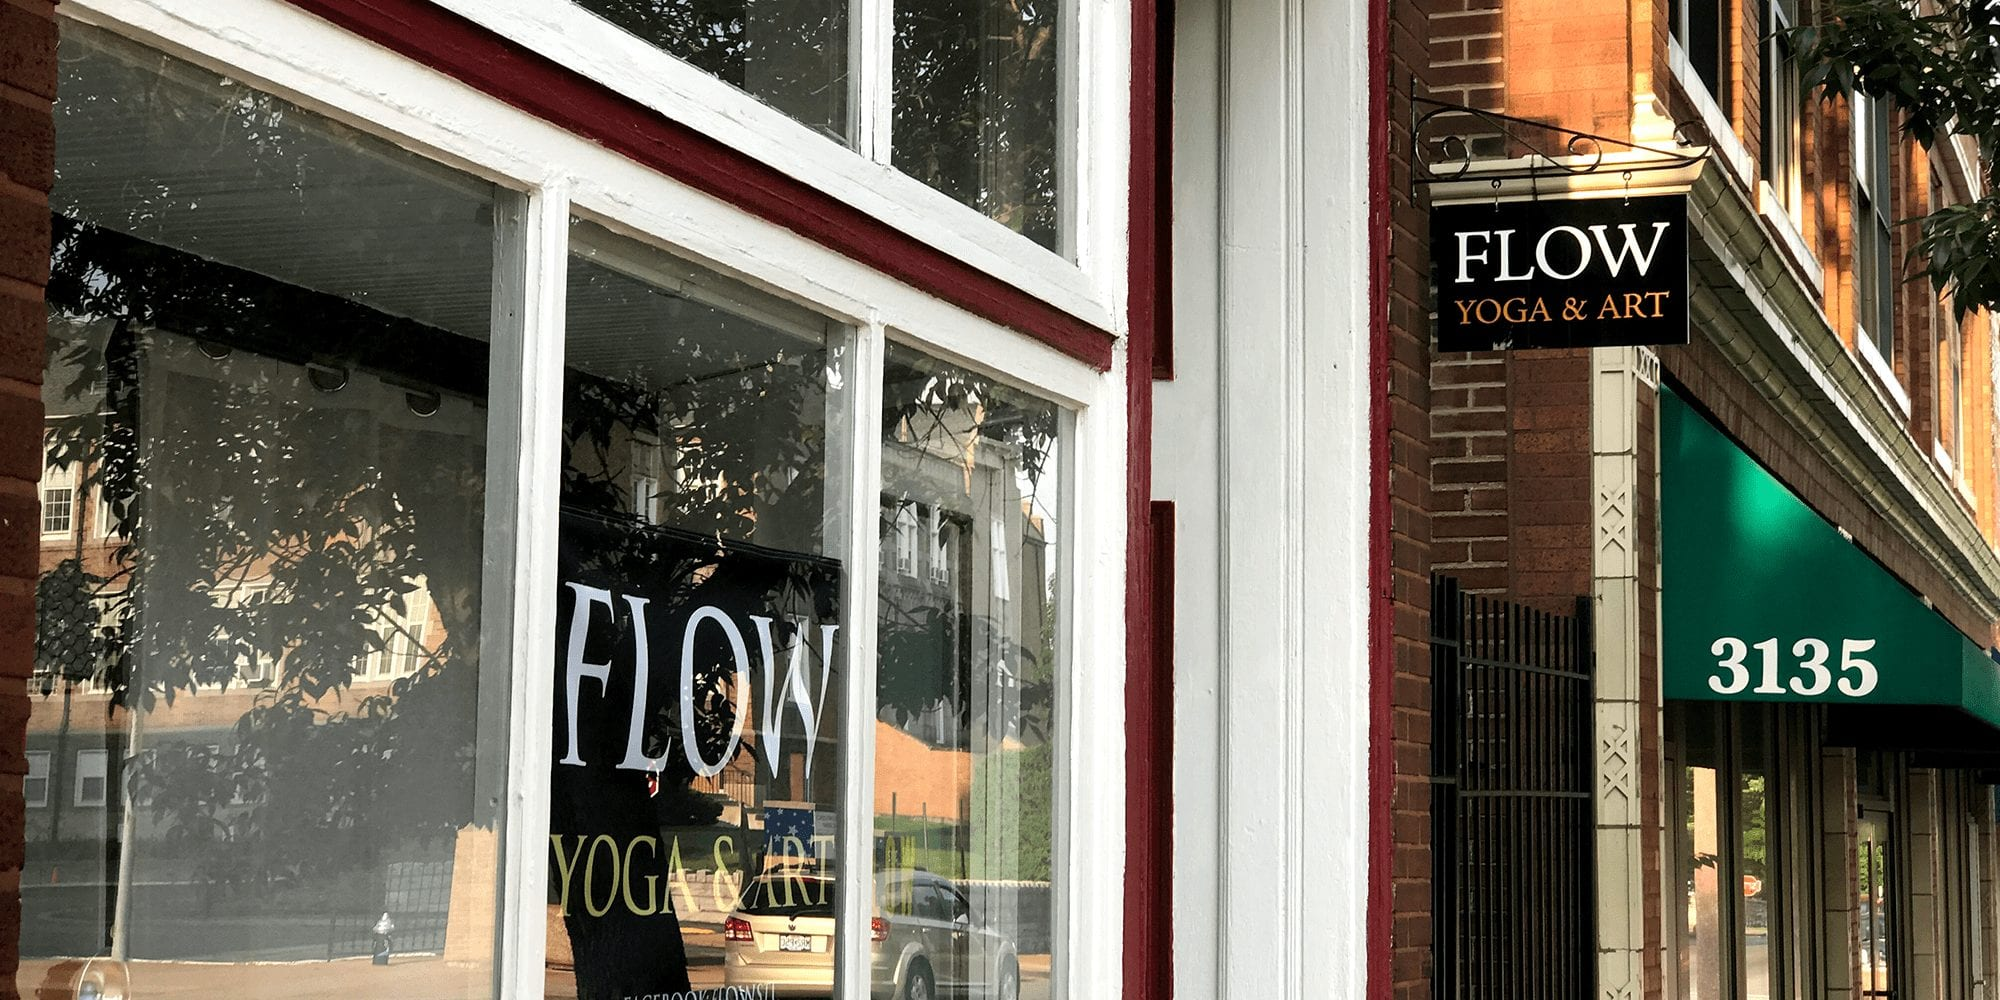 Flow Yoga and Art on Meramec Street in Dutchtown.